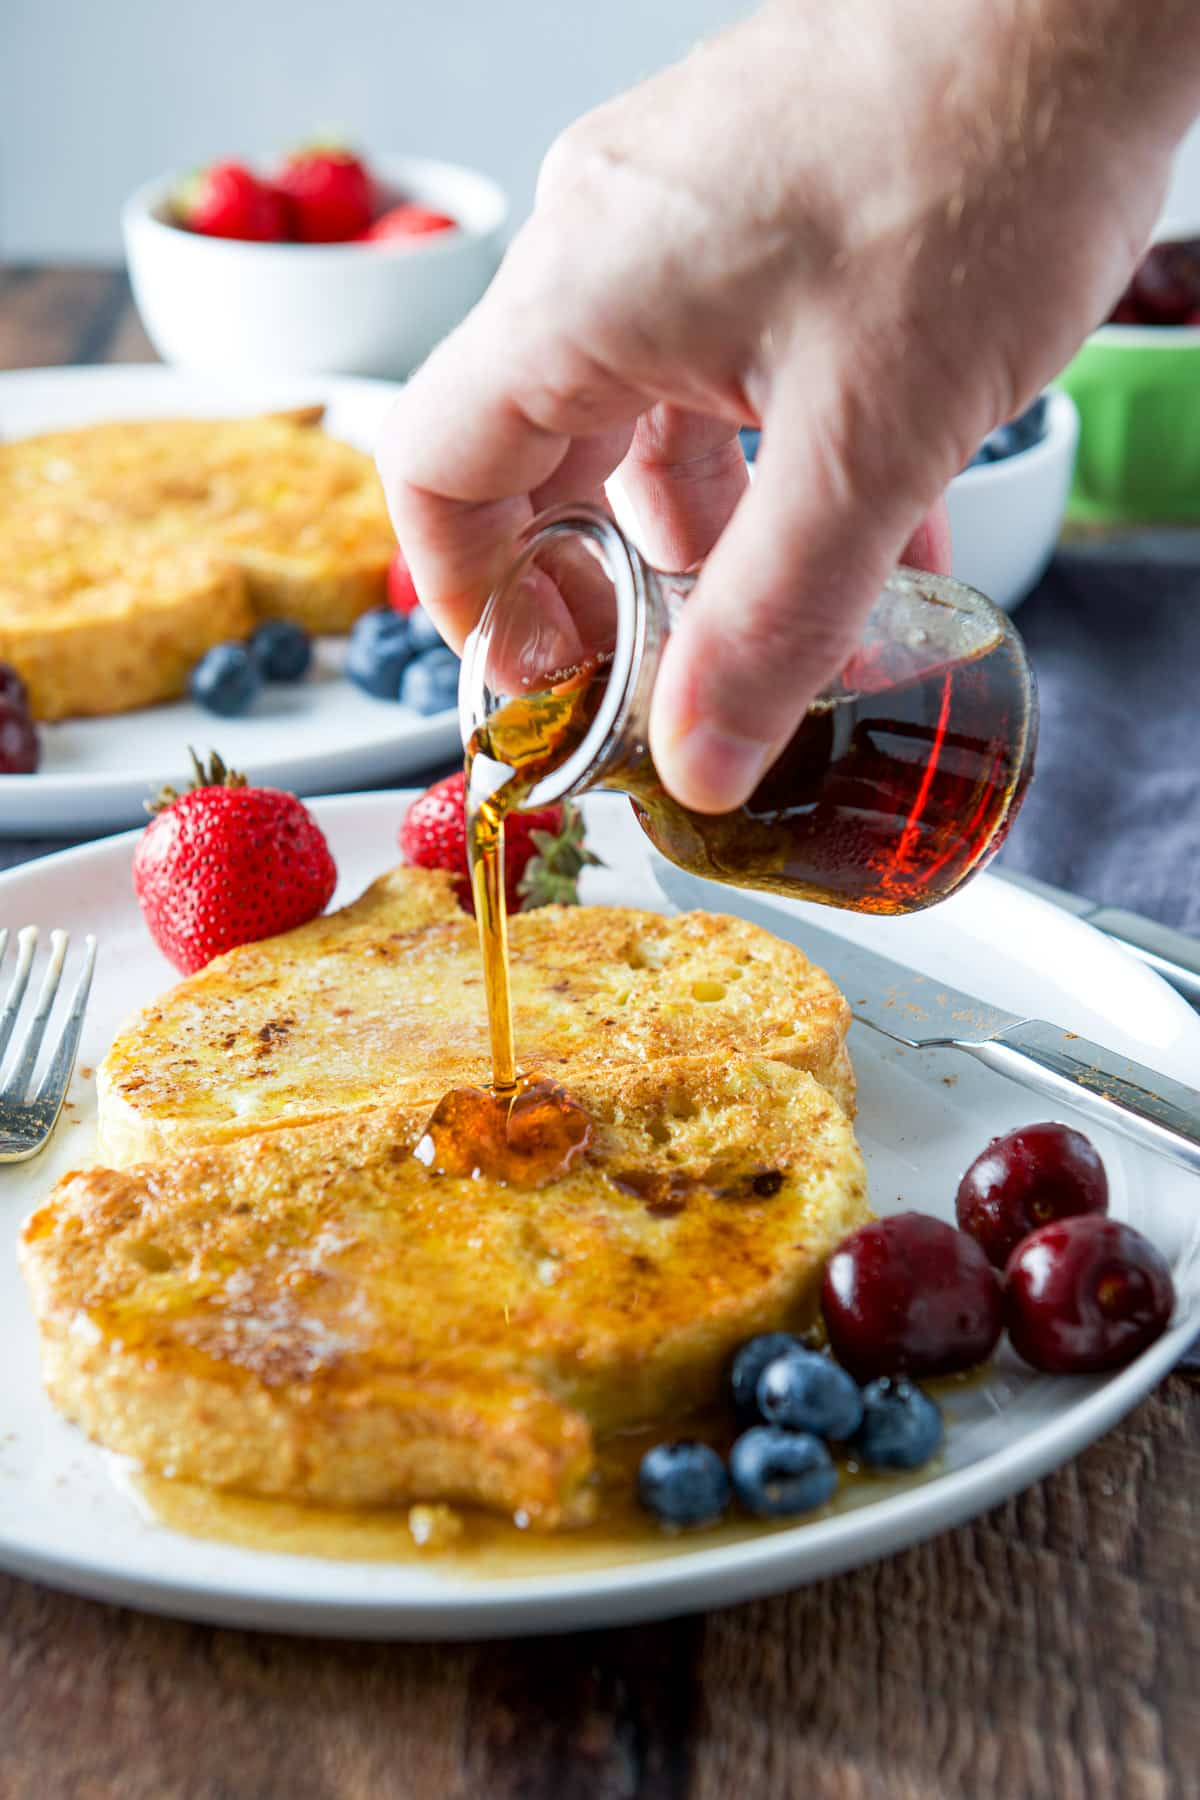 A male hand pouring maple syrup on the buttered French toast